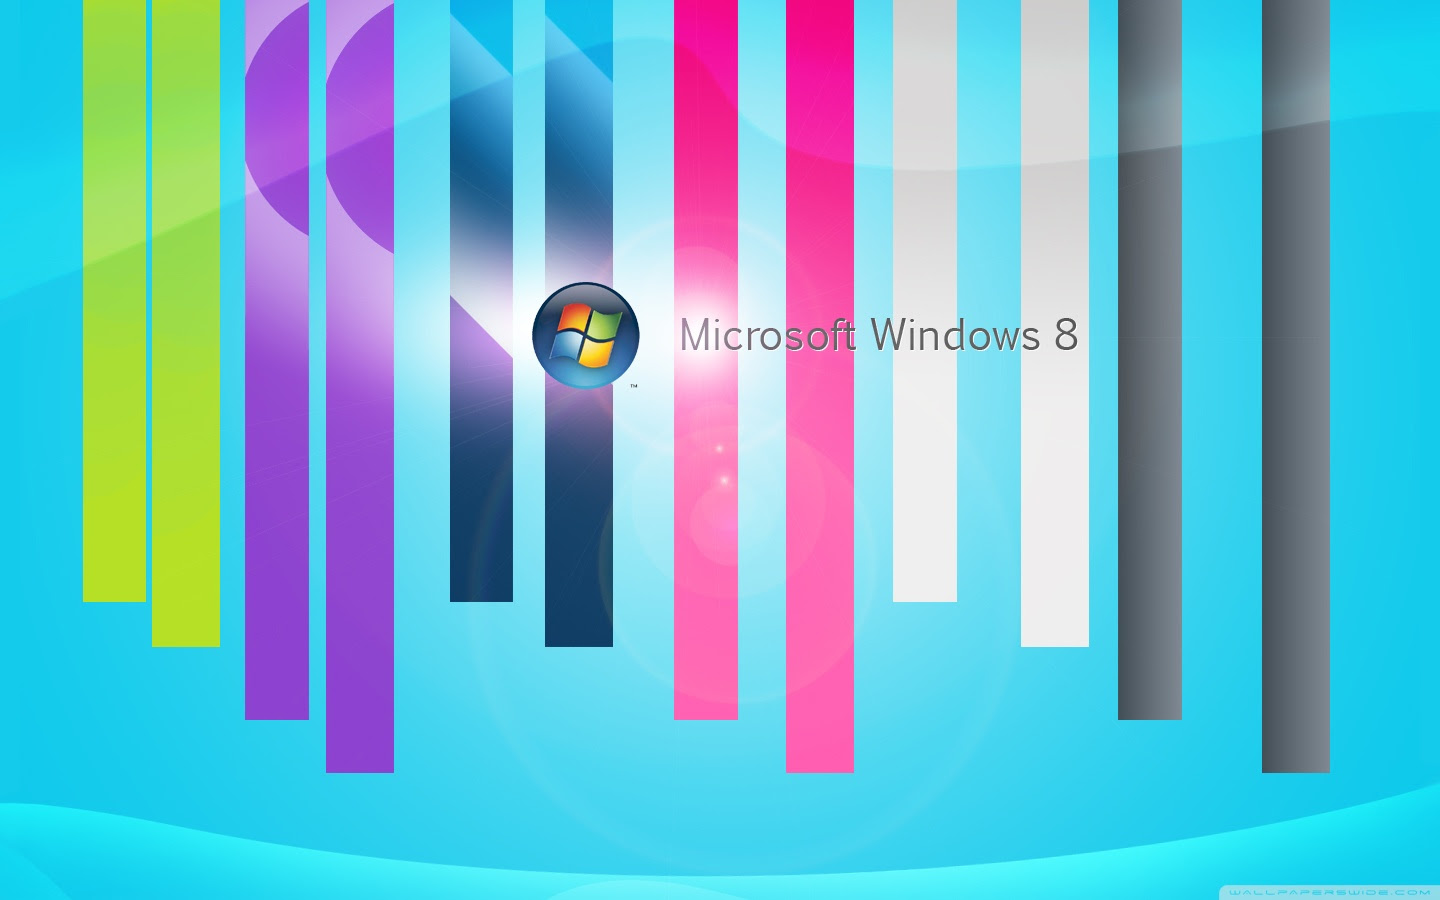 Microsoft Hd Wallpapers For Windows 8 Wallpapers Craft